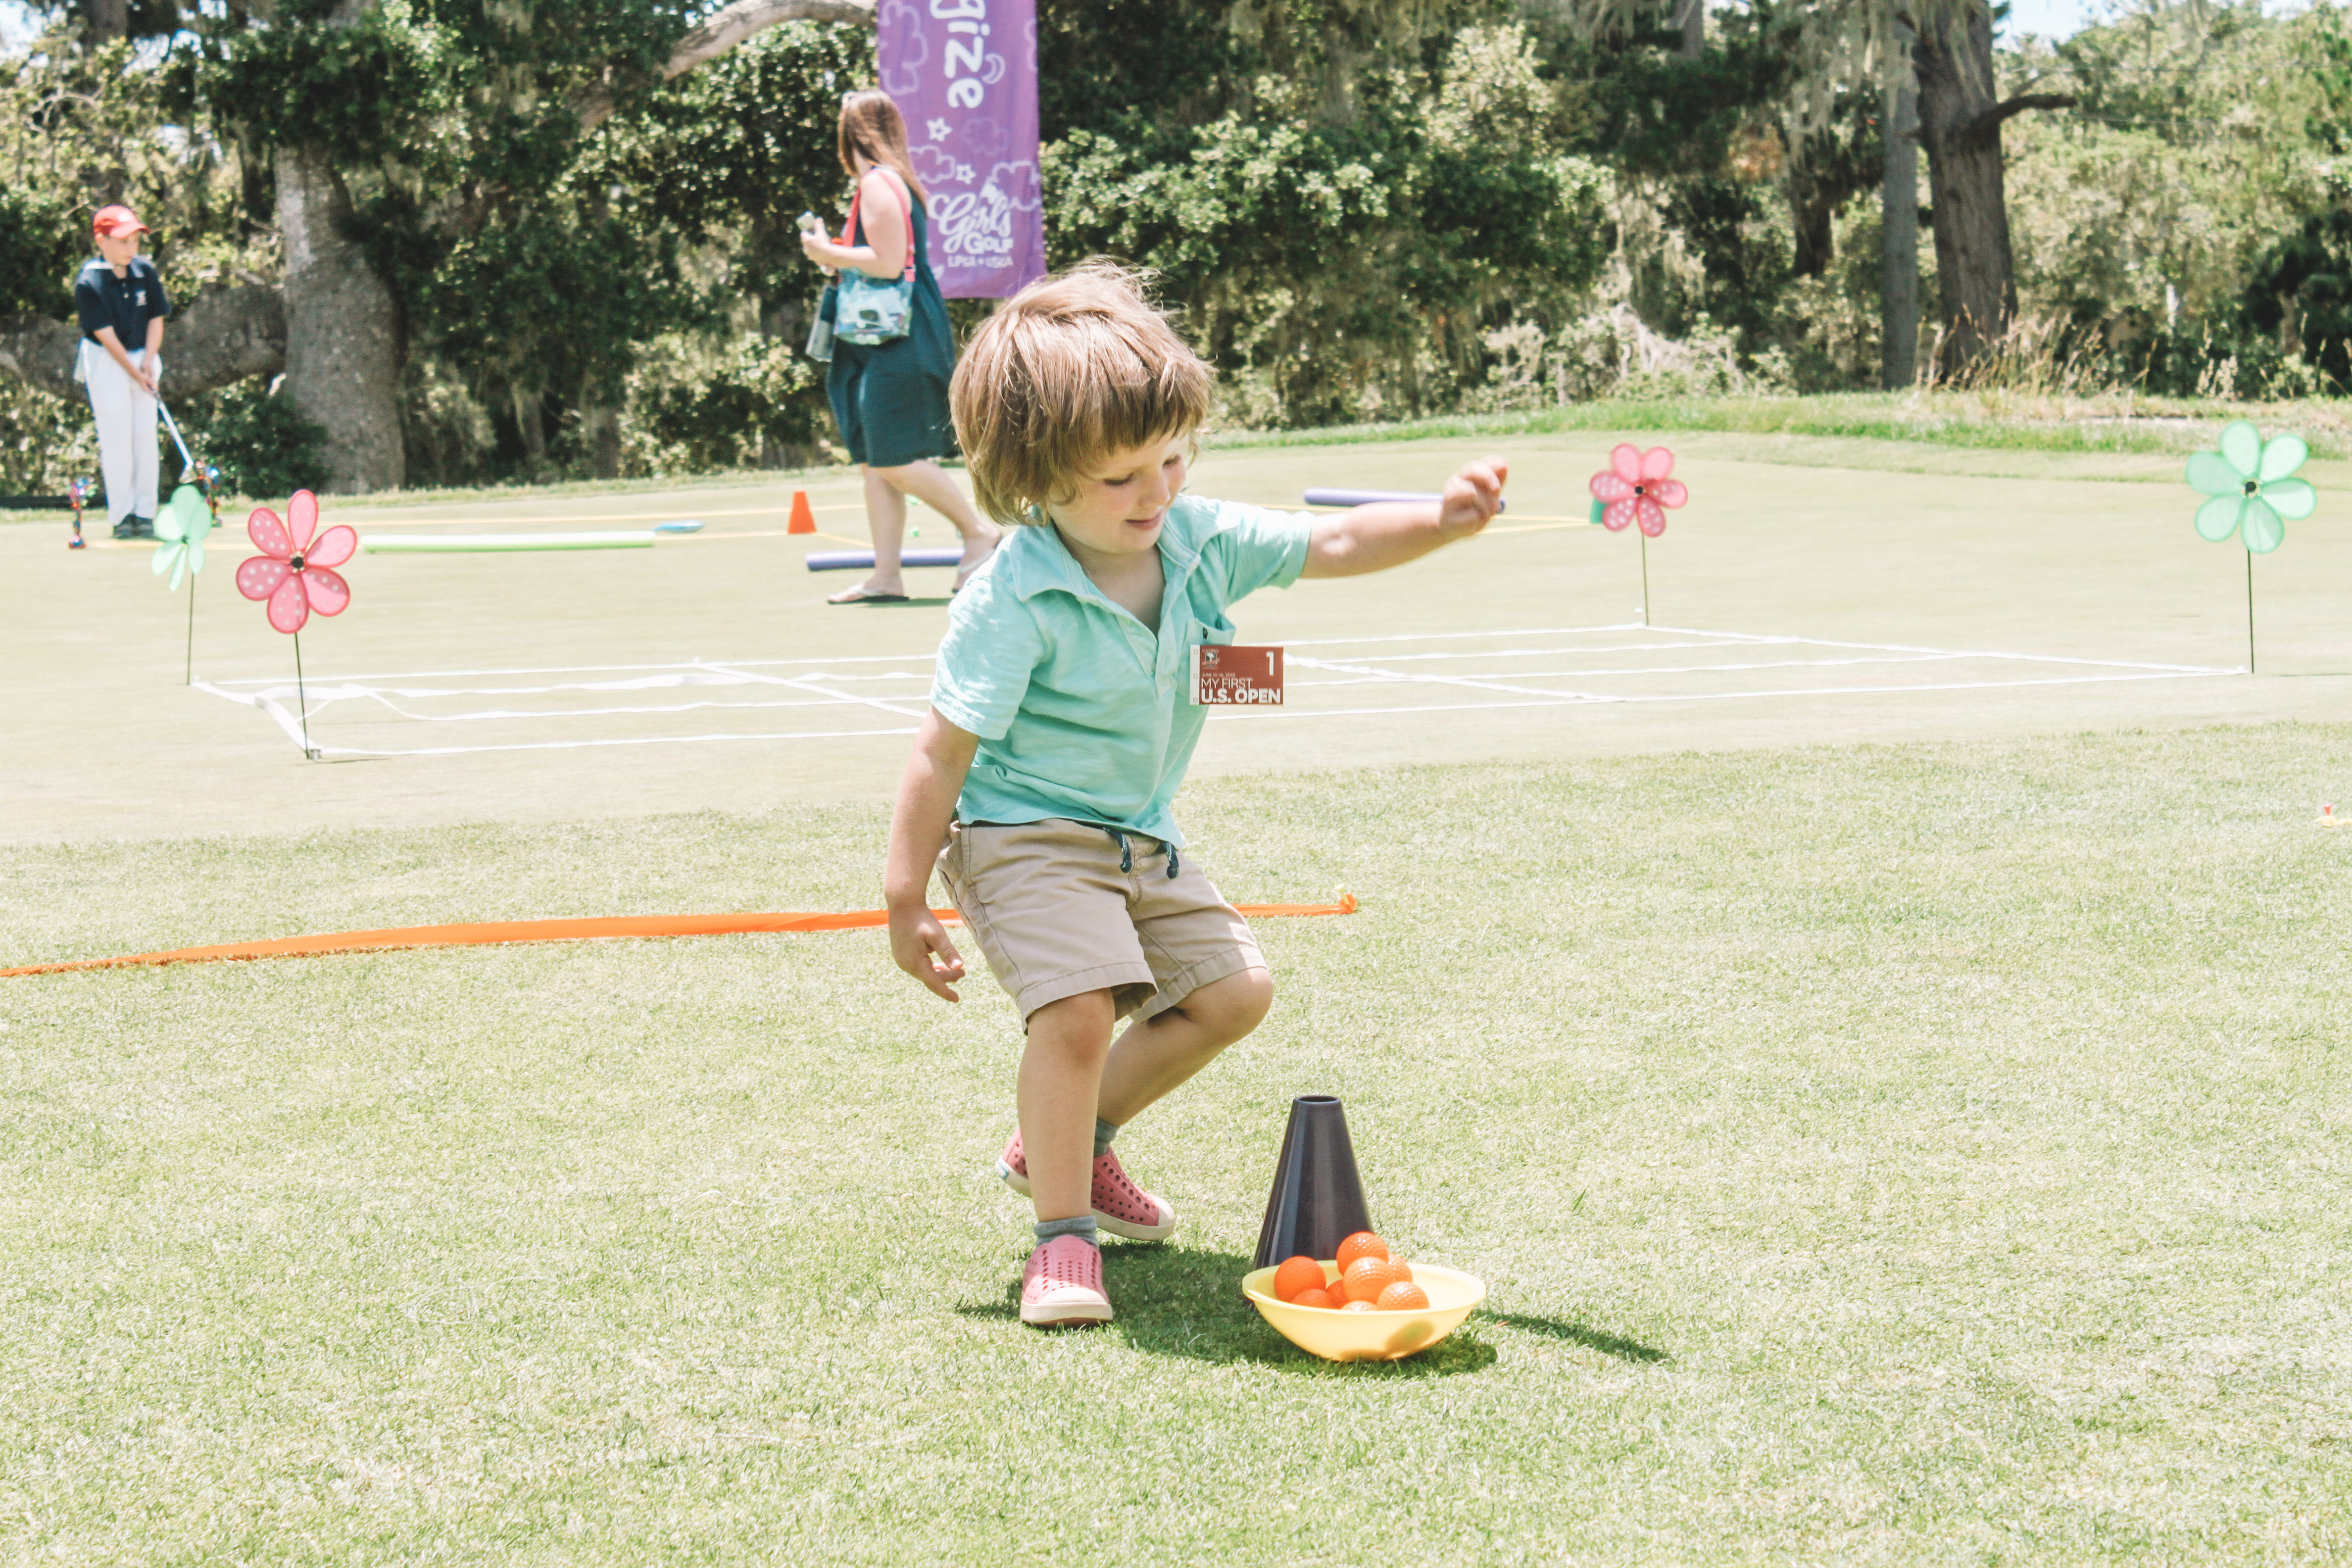 Family-Friendly Junior Experience at the USGA's 119th U.S. Open in Pebble Beach 10